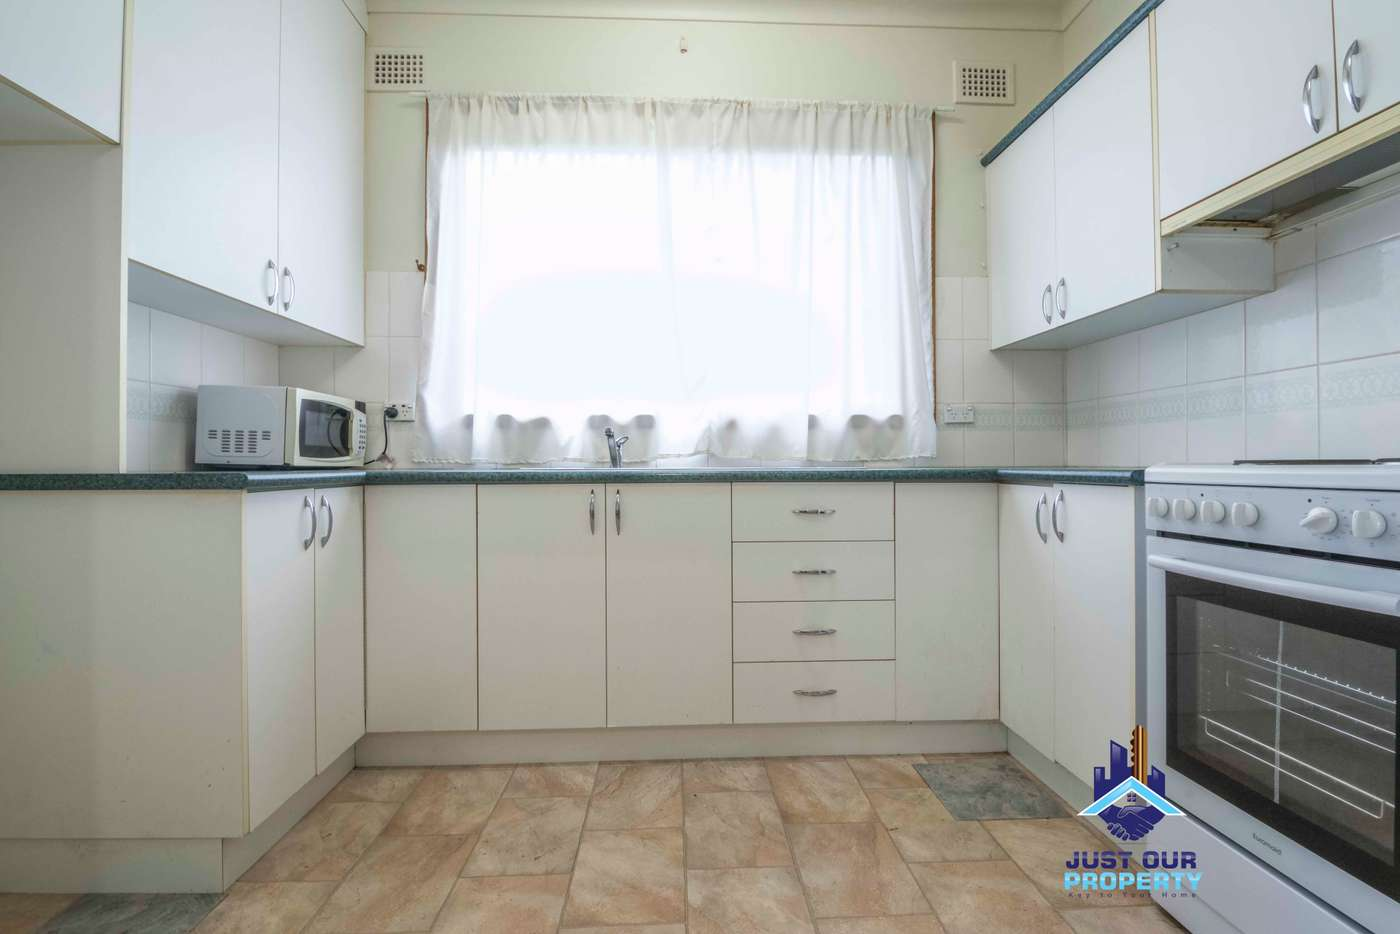 Fifth view of Homely house listing, 10 Stephanie St, Padstow NSW 2211